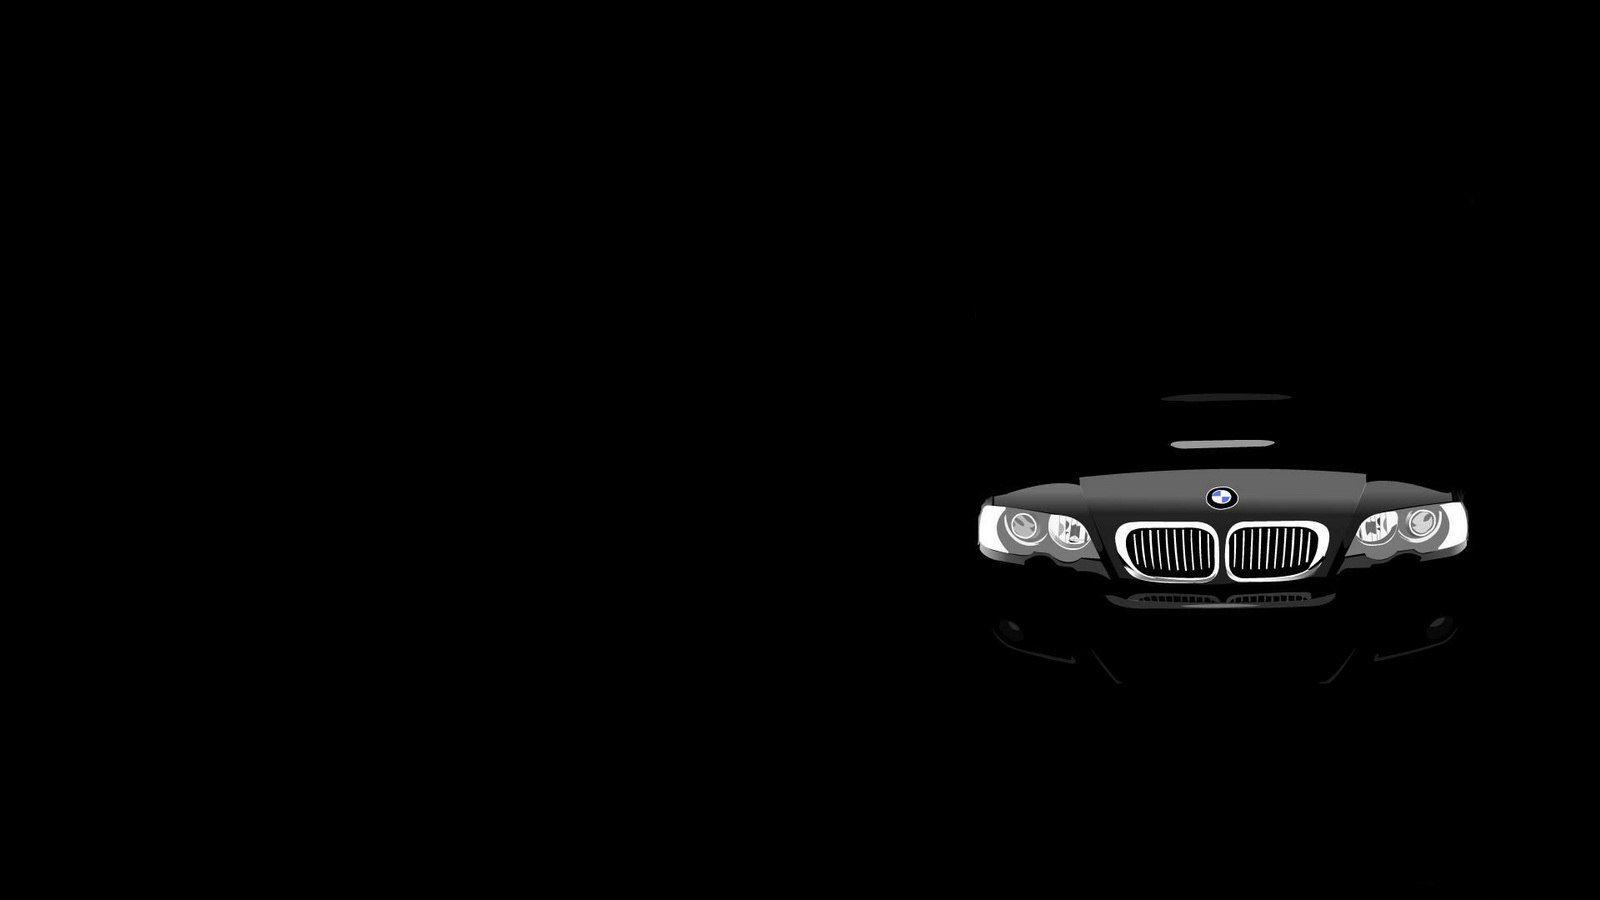 Logo Bmw Wallpapers Wallpaper Cave